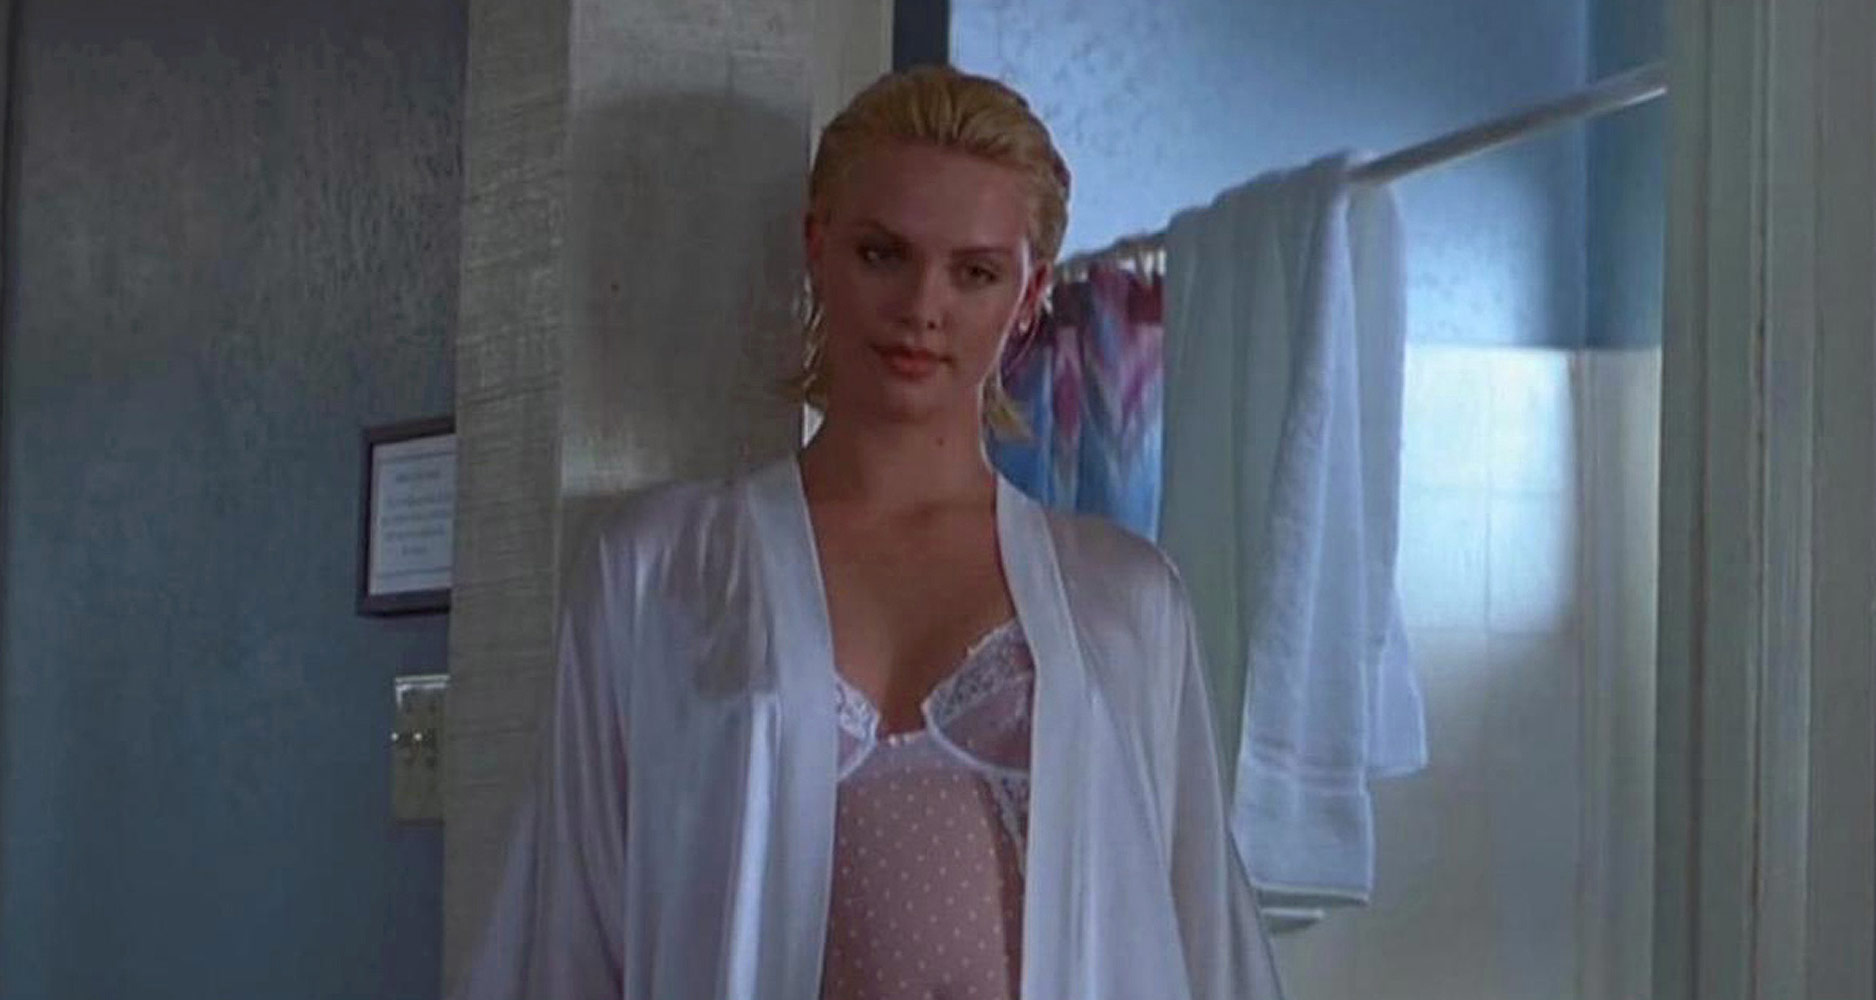 from Eden charlize theron pussy slip photos